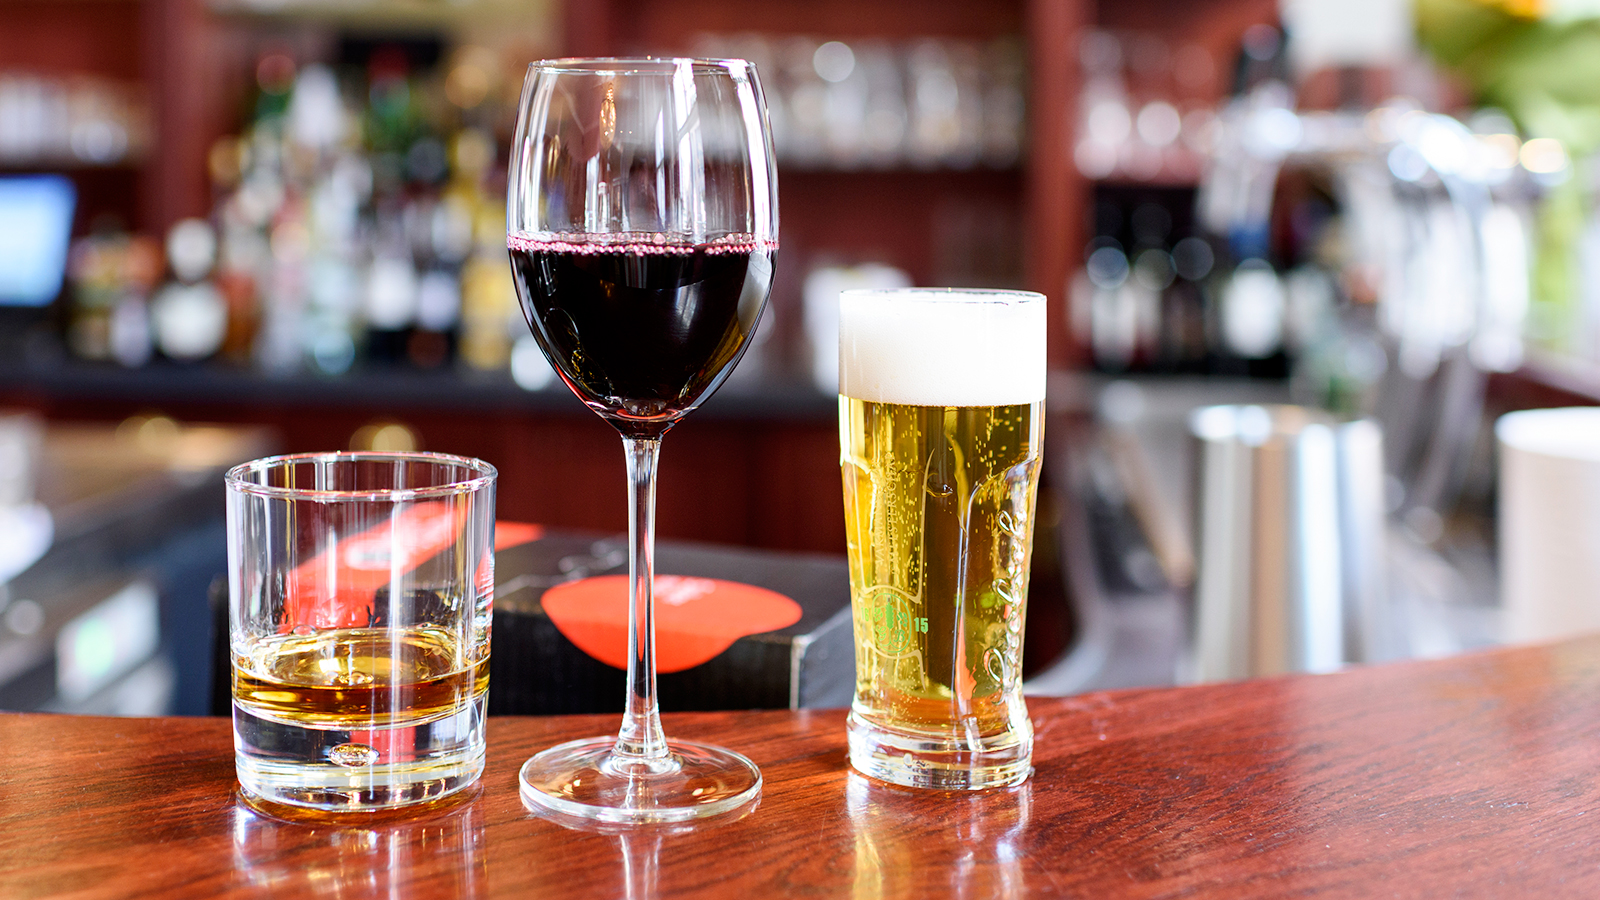 Moderate Alcohol Consumption Lowers Diabetes Risk, But ...